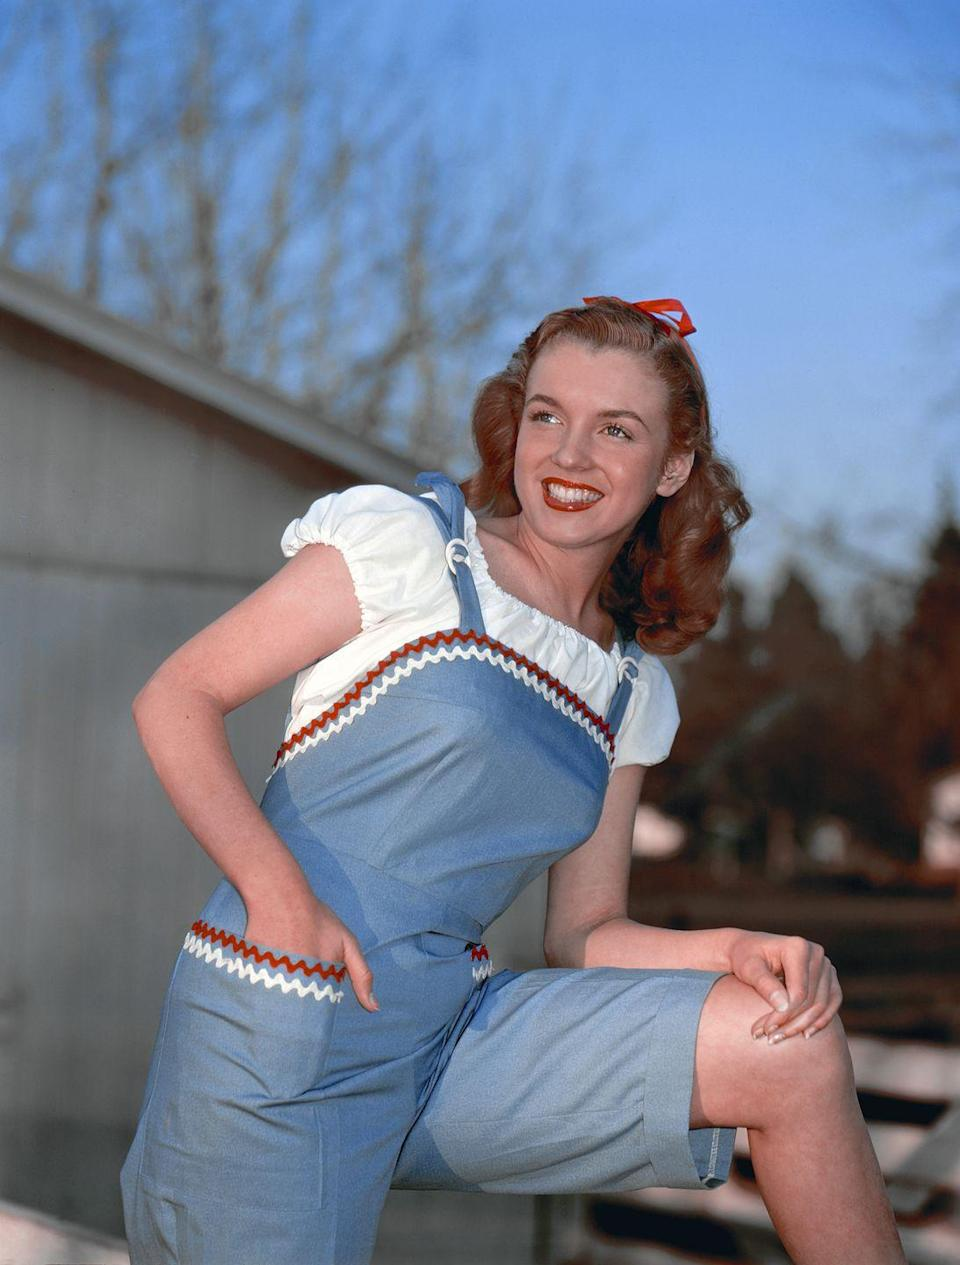 """<p><a href=""""https://time.com/5368339/marilyn-monroe-real-name-story/"""" rel=""""nofollow noopener"""" target=""""_blank"""" data-ylk=""""slk:Norma Jeane started going by Marilyn Monroe"""" class=""""link rapid-noclick-resp"""">Norma Jeane started going by Marilyn Monroe</a> this year, but according to <em>TIME Magazine</em>, it would be another 10 years before she officially changed her name. <br></p>"""